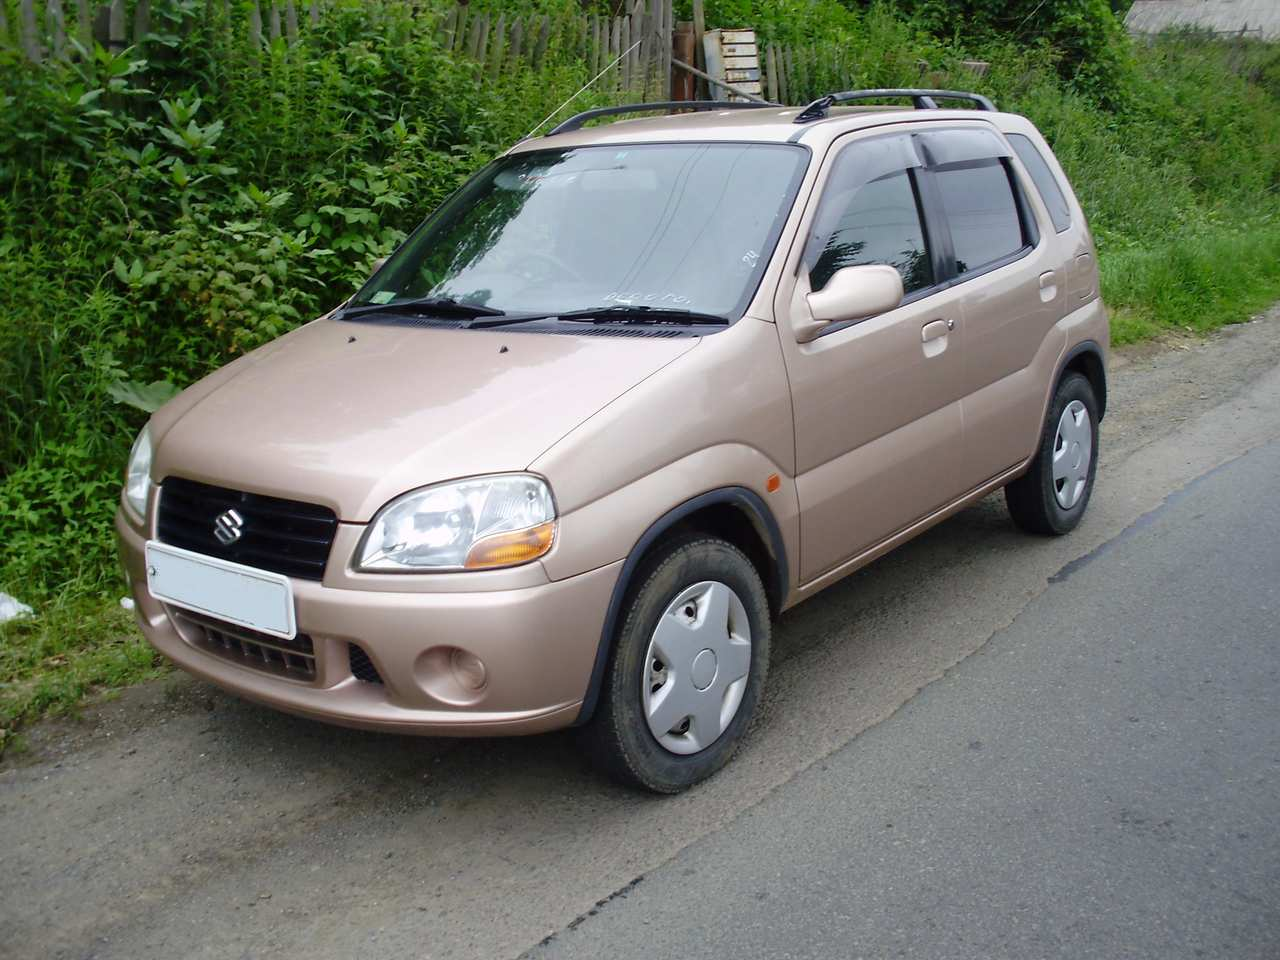 Suzuki Swift 1.3 2000 photo - 7